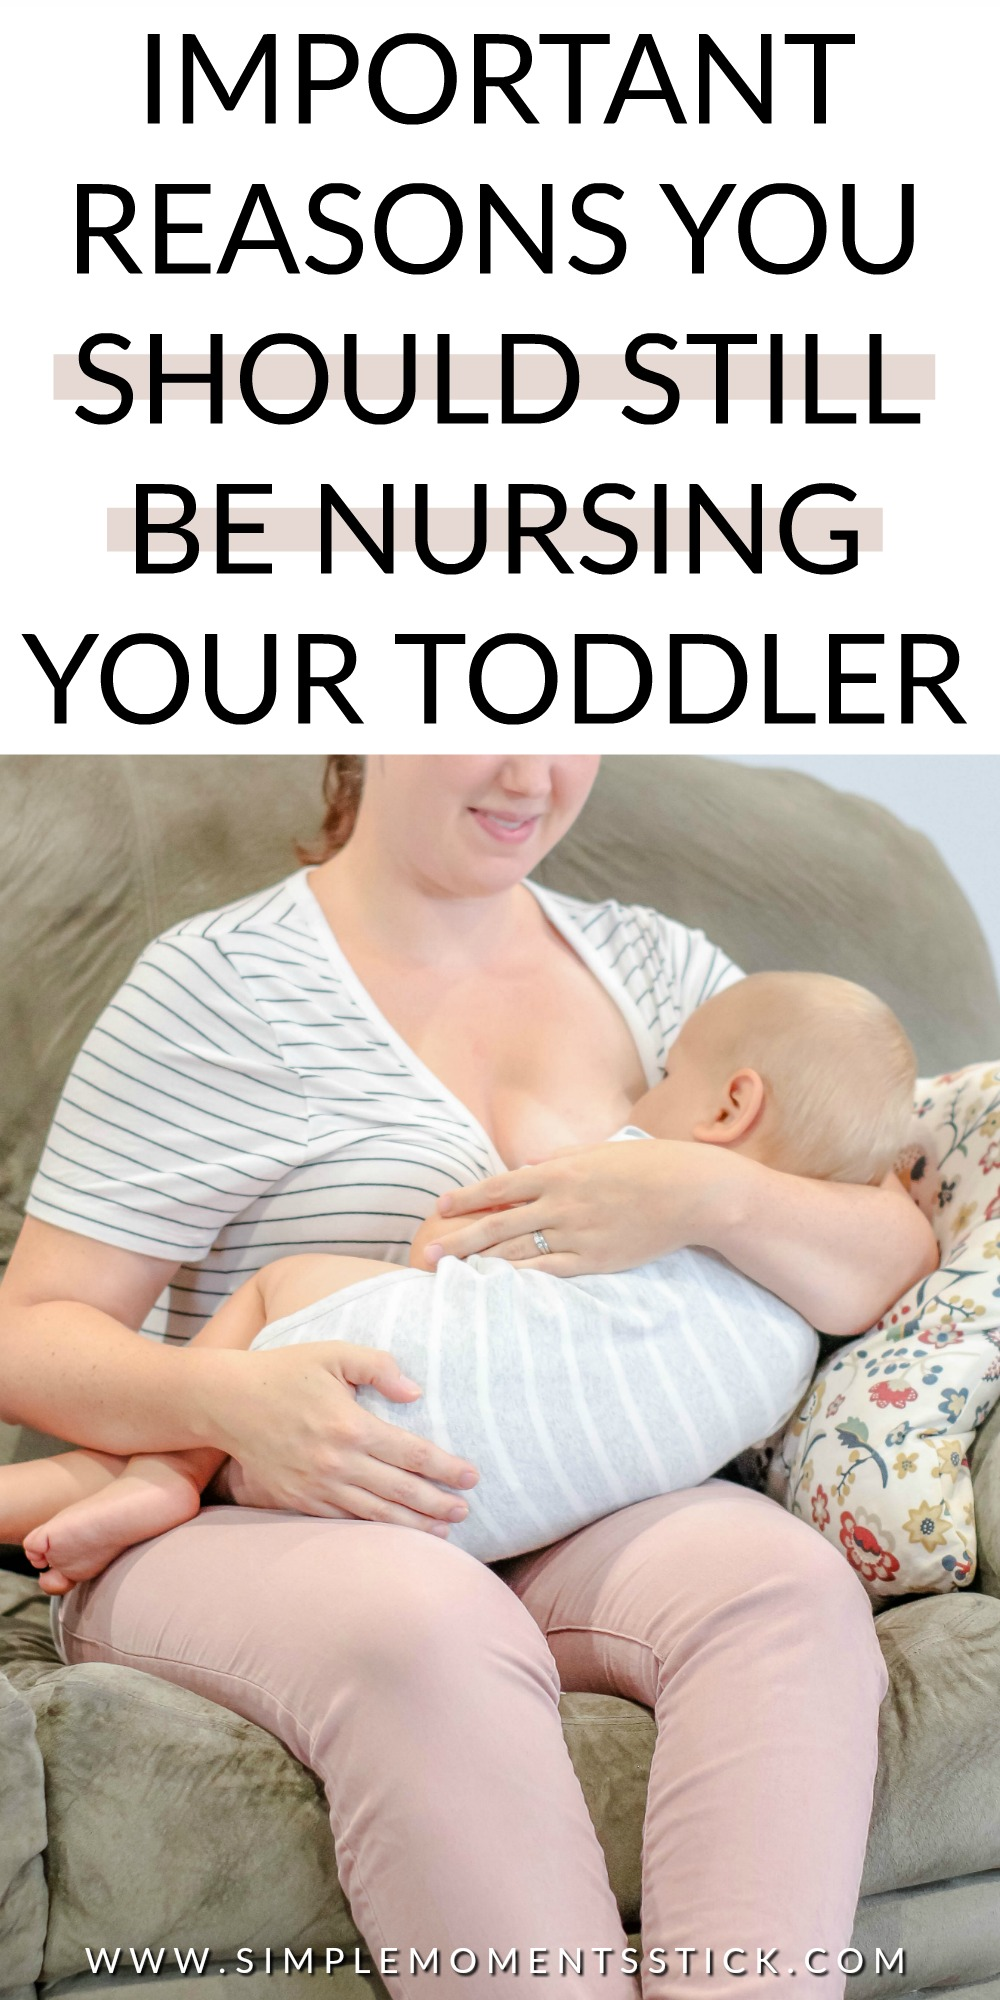 #ad There are so many breastfeeding toddler benefits! Find them all here!